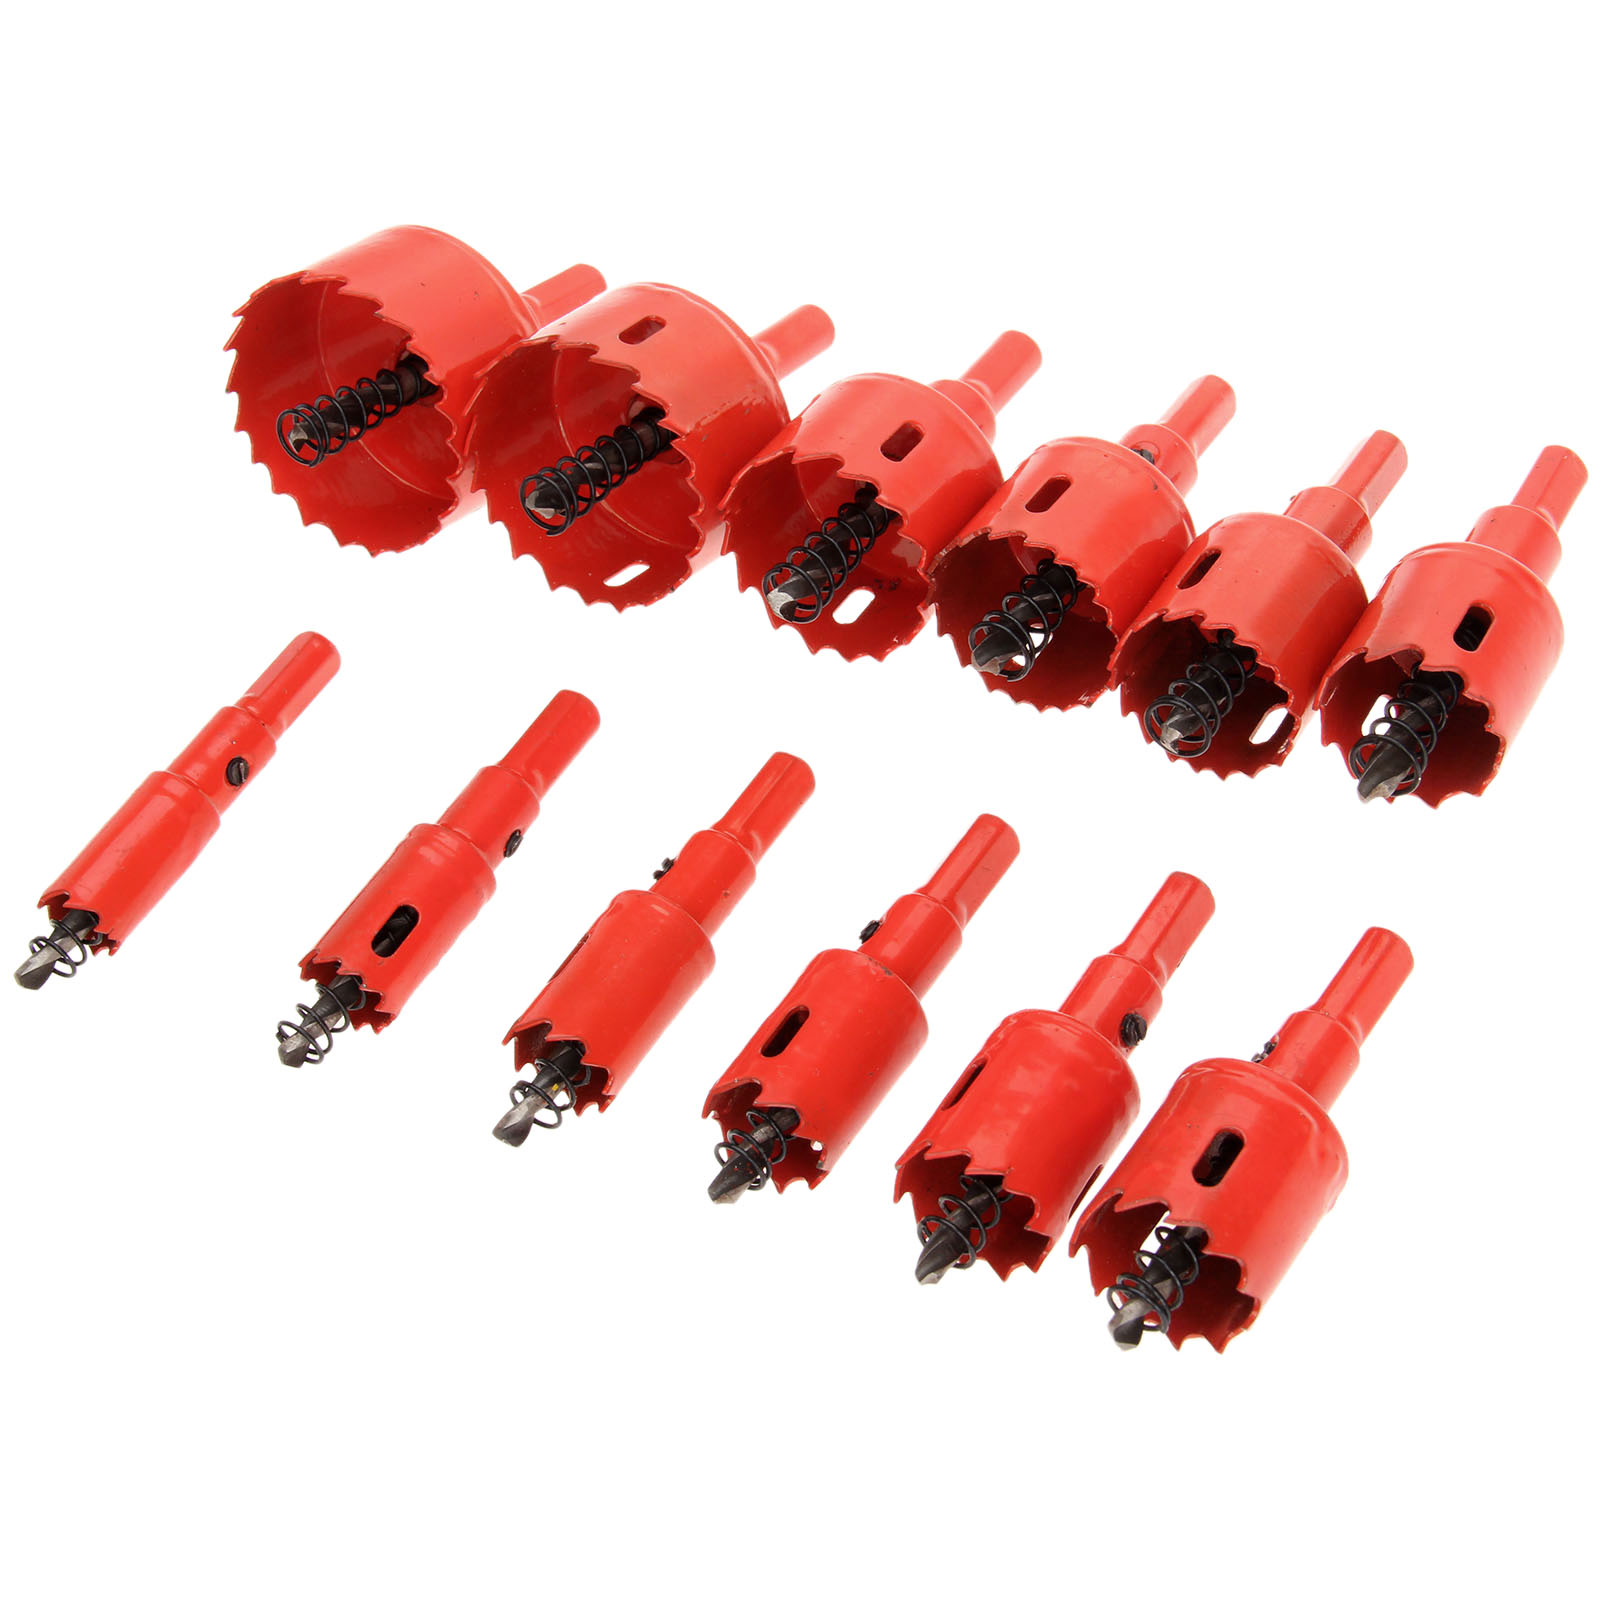 цена на 1Pc 16mm-53mm Drill Bit Hole Saw Twist Drill Bits Cutter Power Tool Metal Holes Drilling Kit Carpentry Tools for Wood Steel Iron